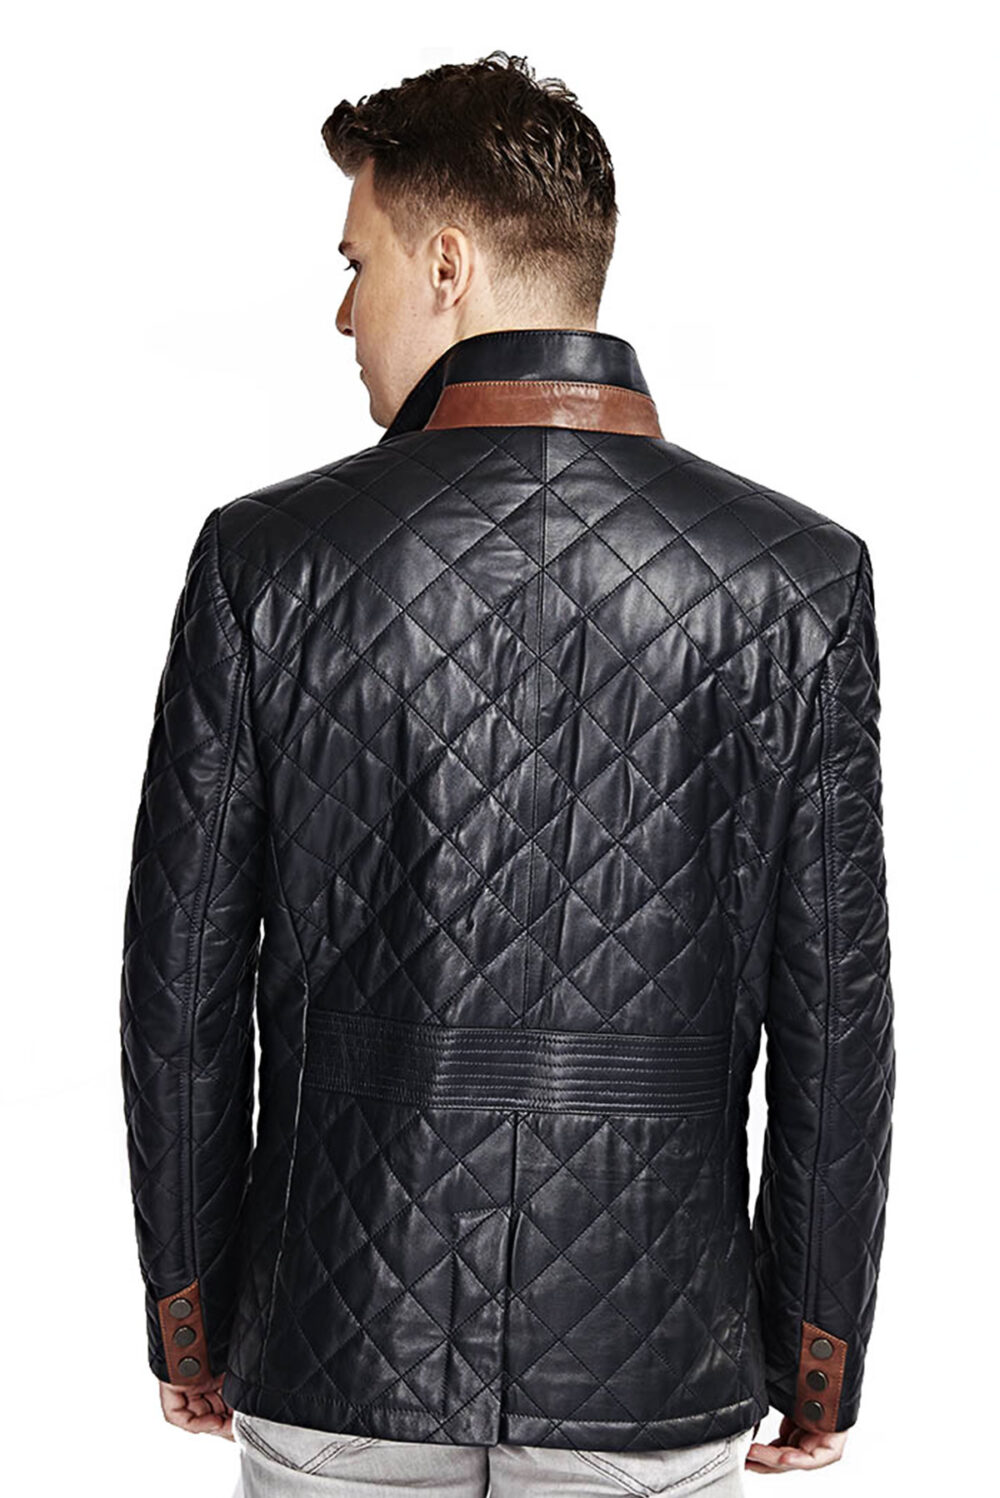 Zampa Navy Blue Quilted Men's Leather Jacket